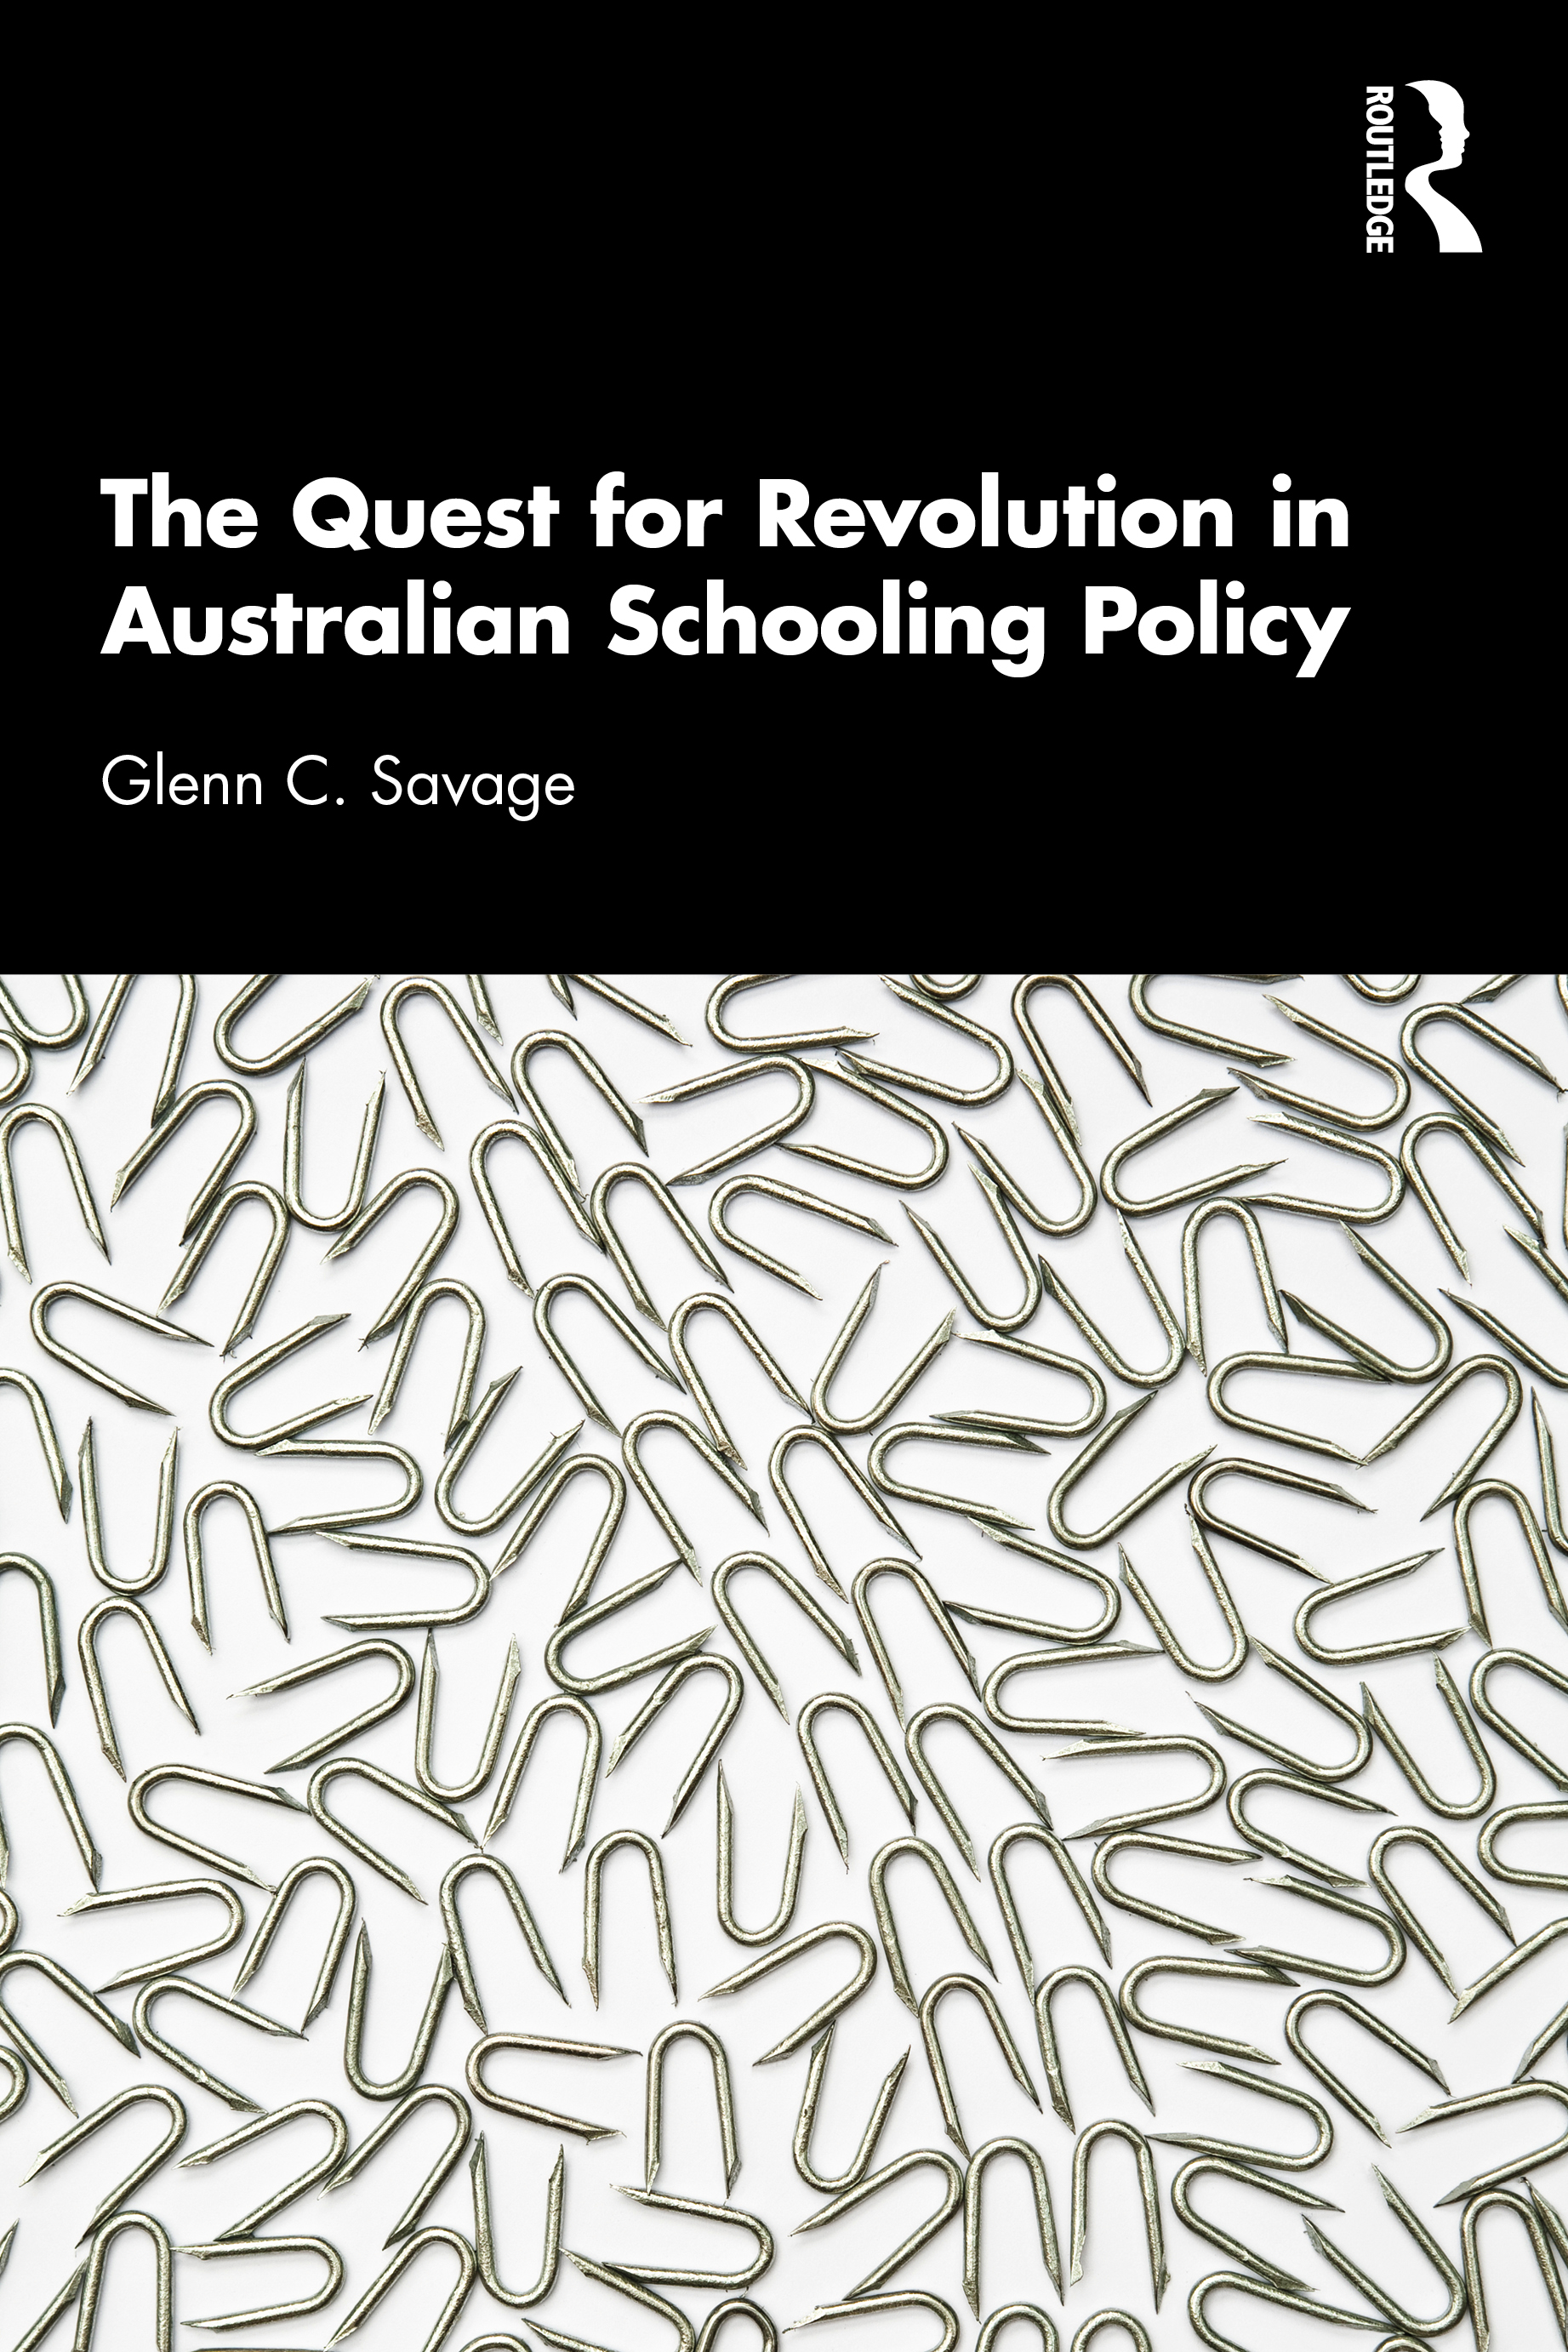 The Quest for Revolution in Australian Schooling Policy